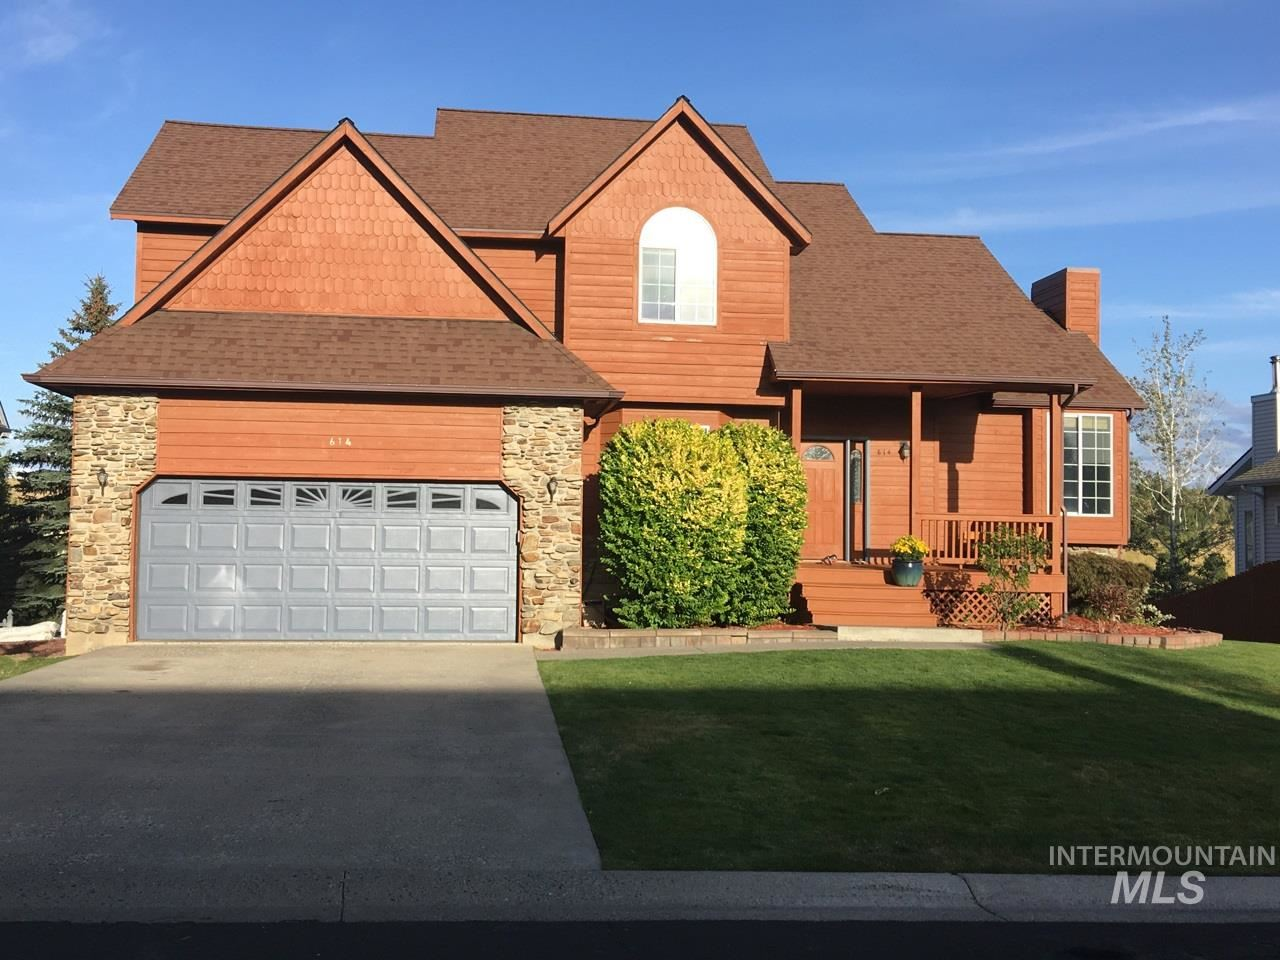 Photo of 614 Panorama, Moscow, ID 83843 (MLS # 98782800)